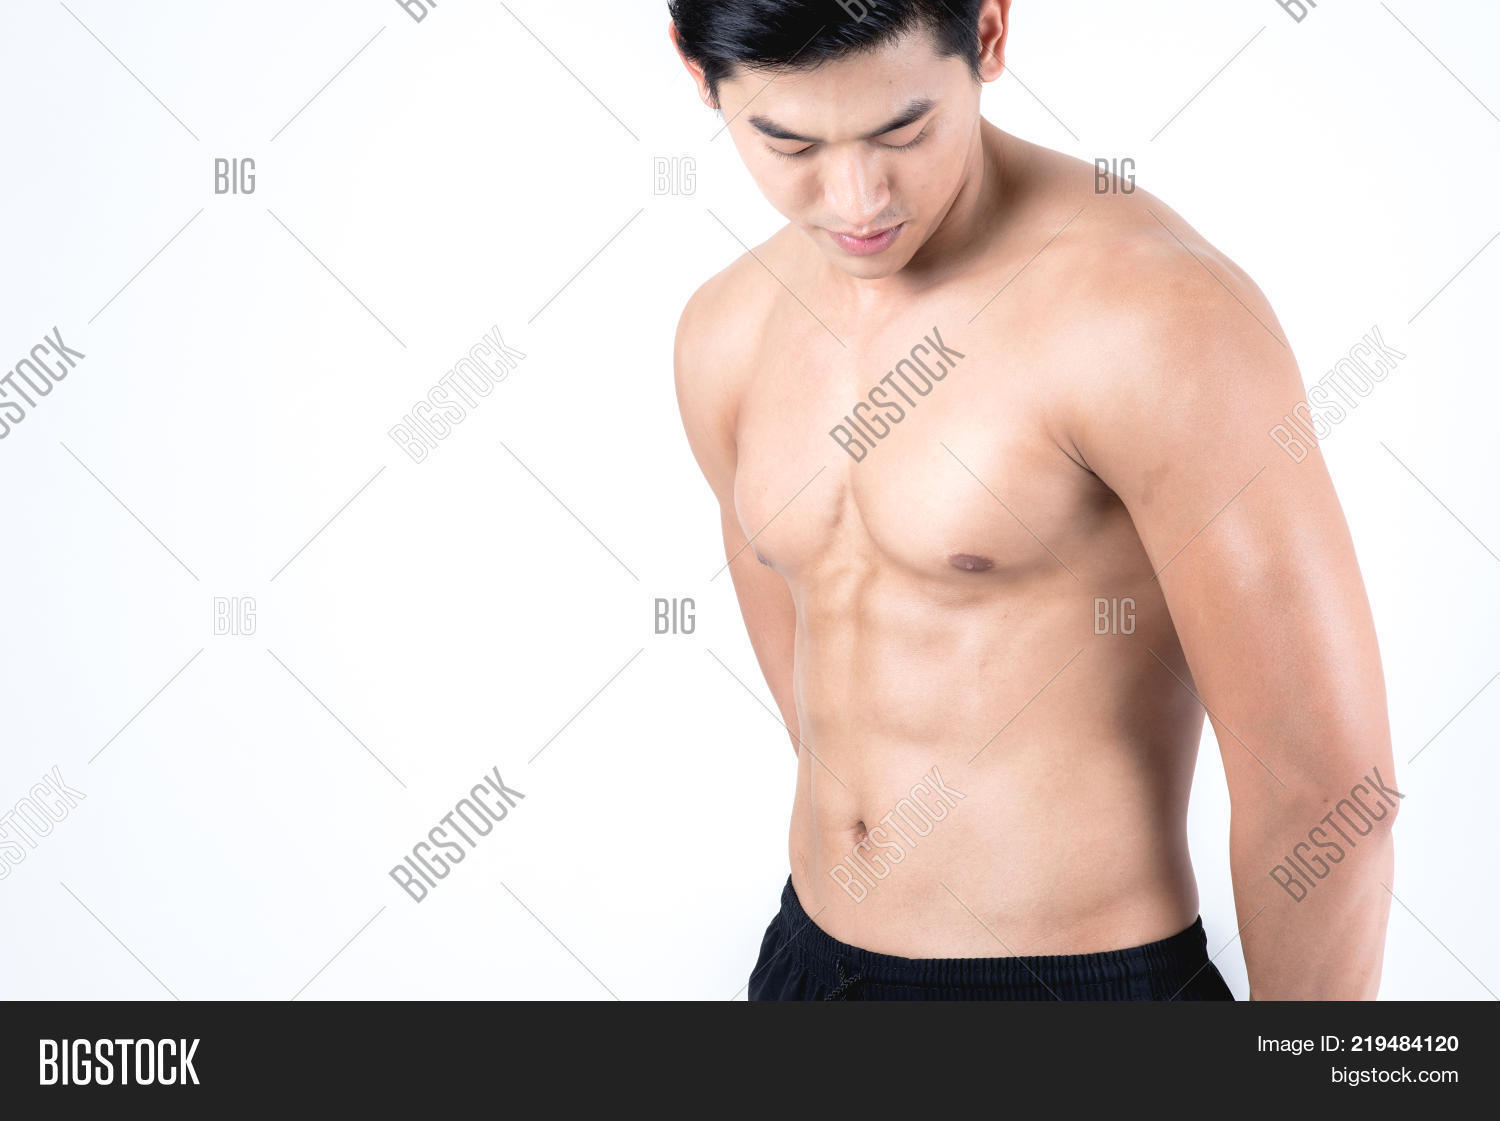 Have Fat men body naked thanks for